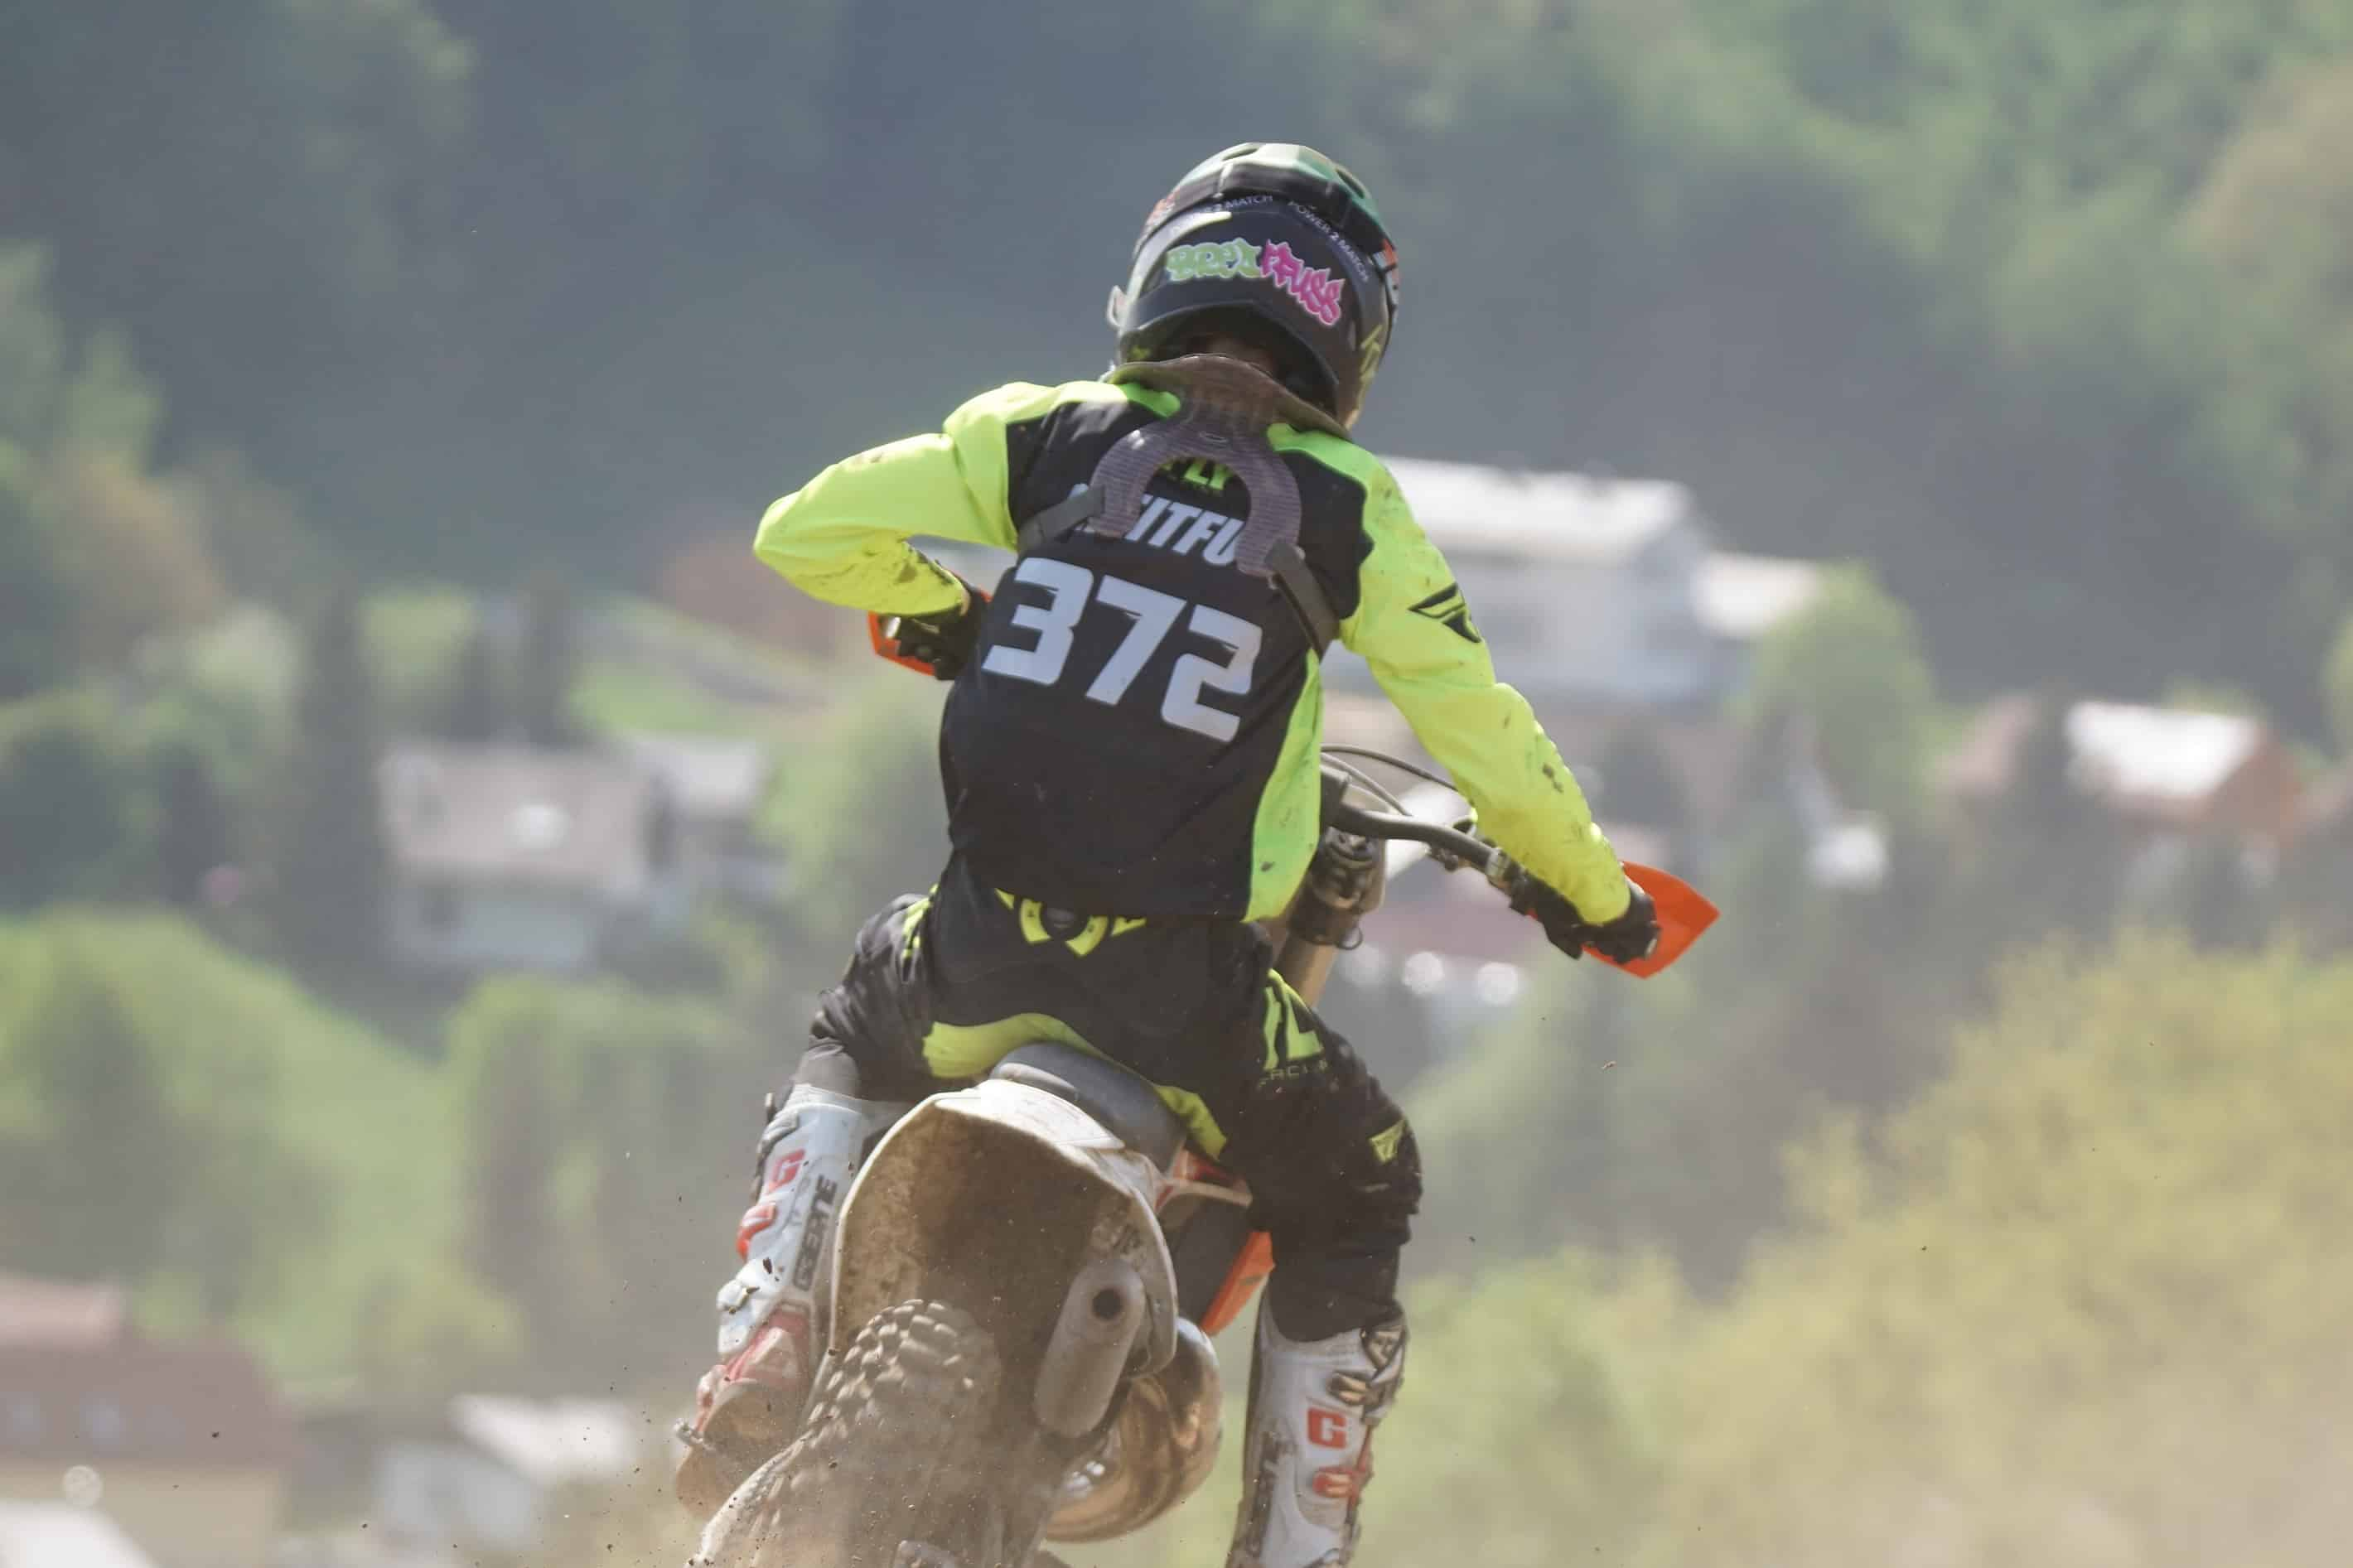 DSC 740_Moto Cross Sittendorf Teil1 am 29.04.2018